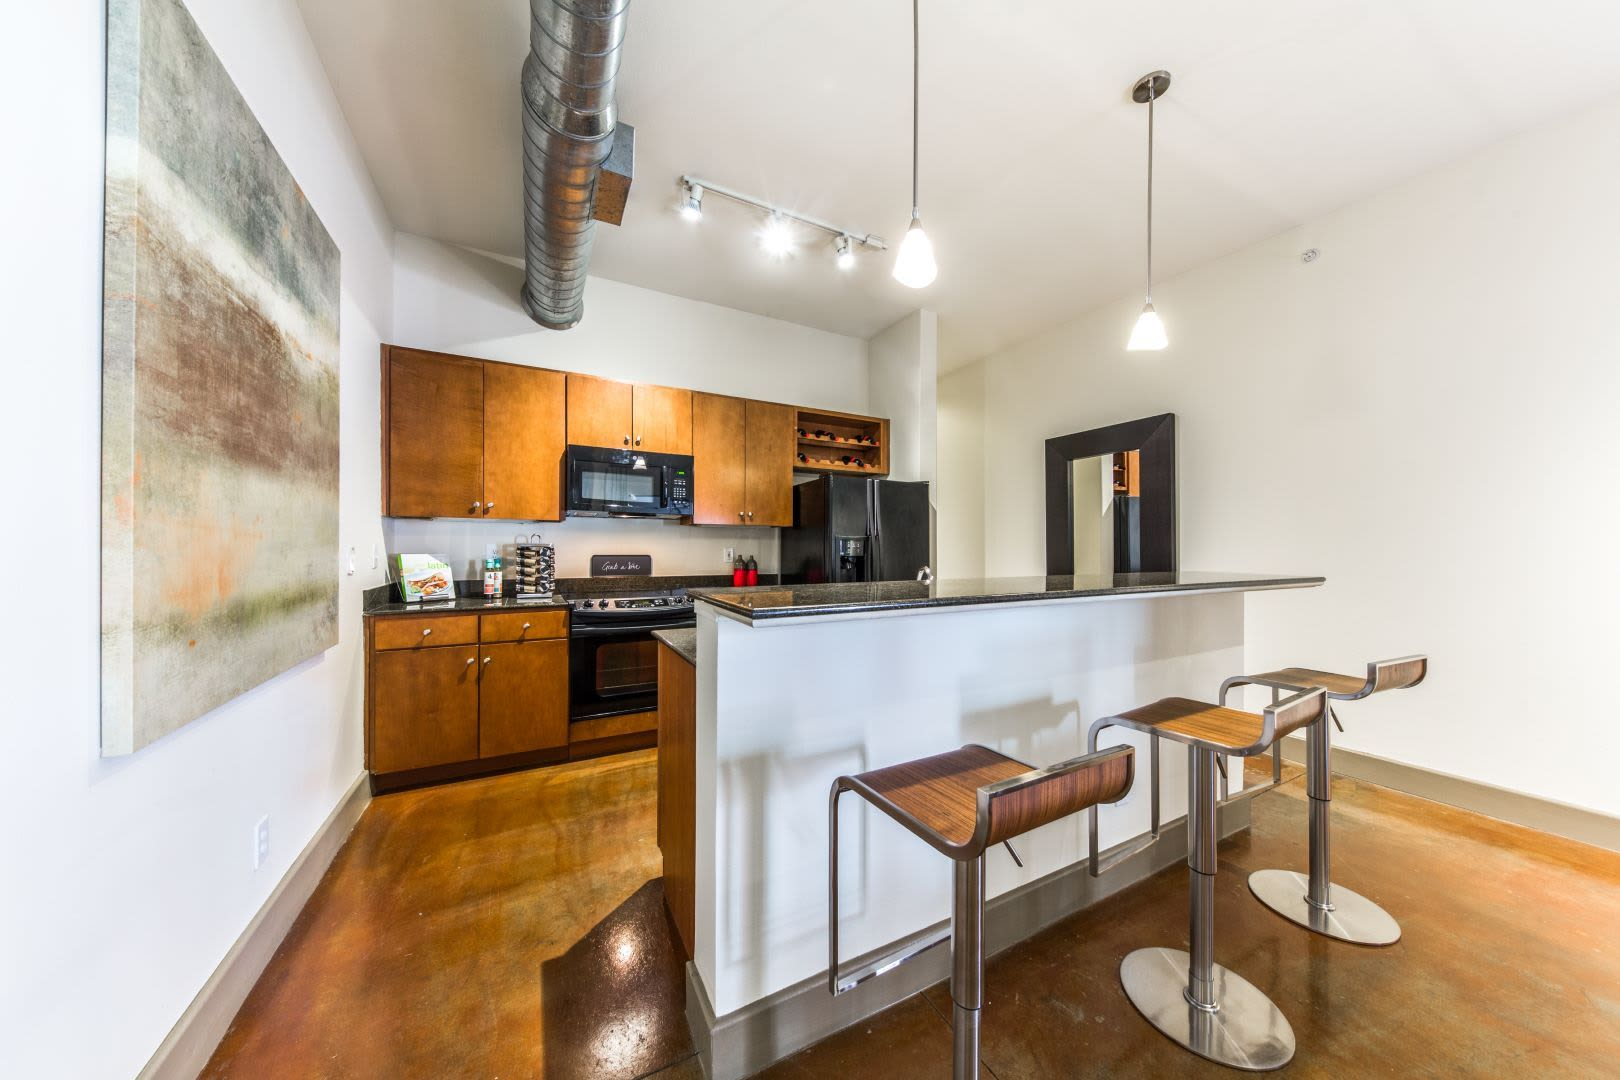 Kitchen with a breakfast bar at Marquis Lofts on Sabine in Houston, Texas